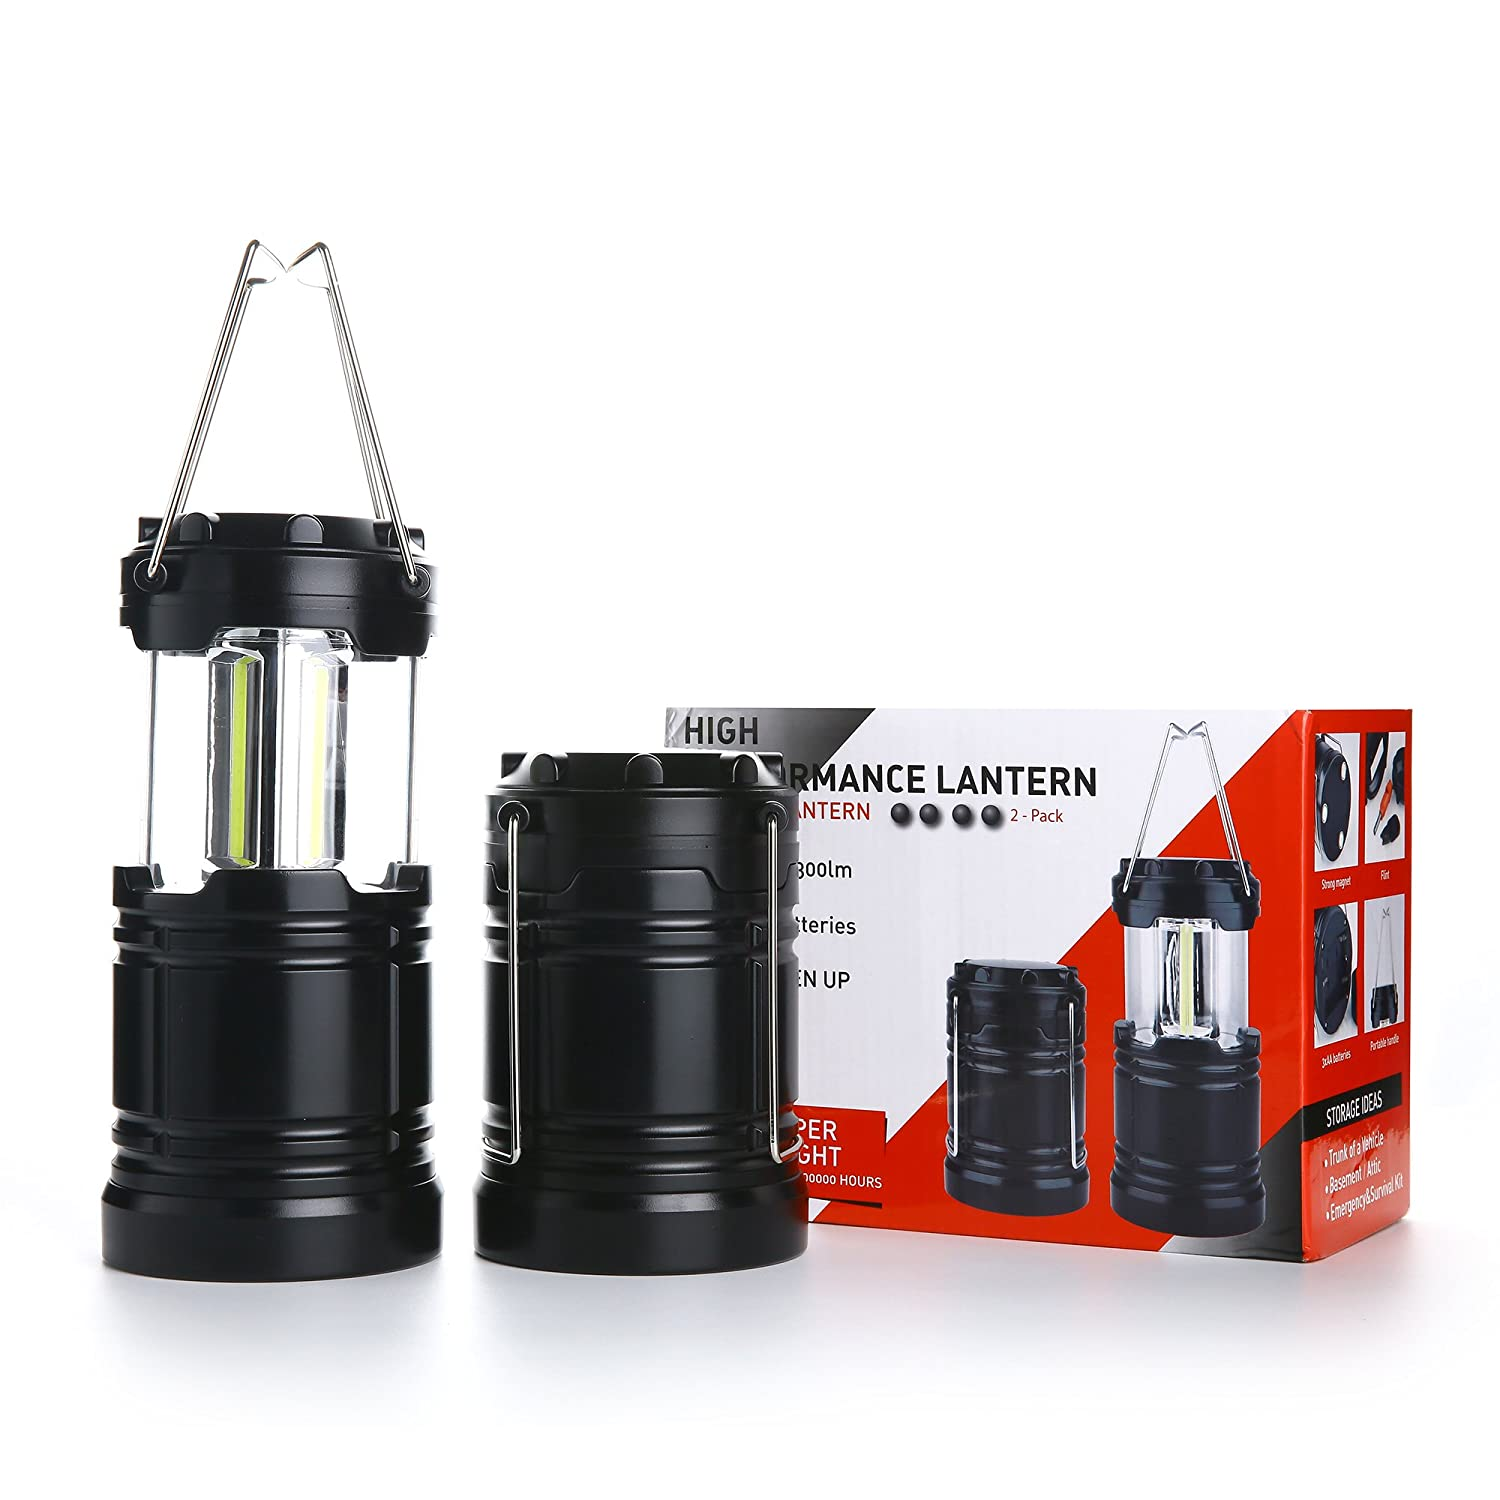 2 Pcs Military Grade Camping Lantern Tactical Lantern COB LED with Magnetic Base for Hurricanes, Emergencies, Storms, Outages